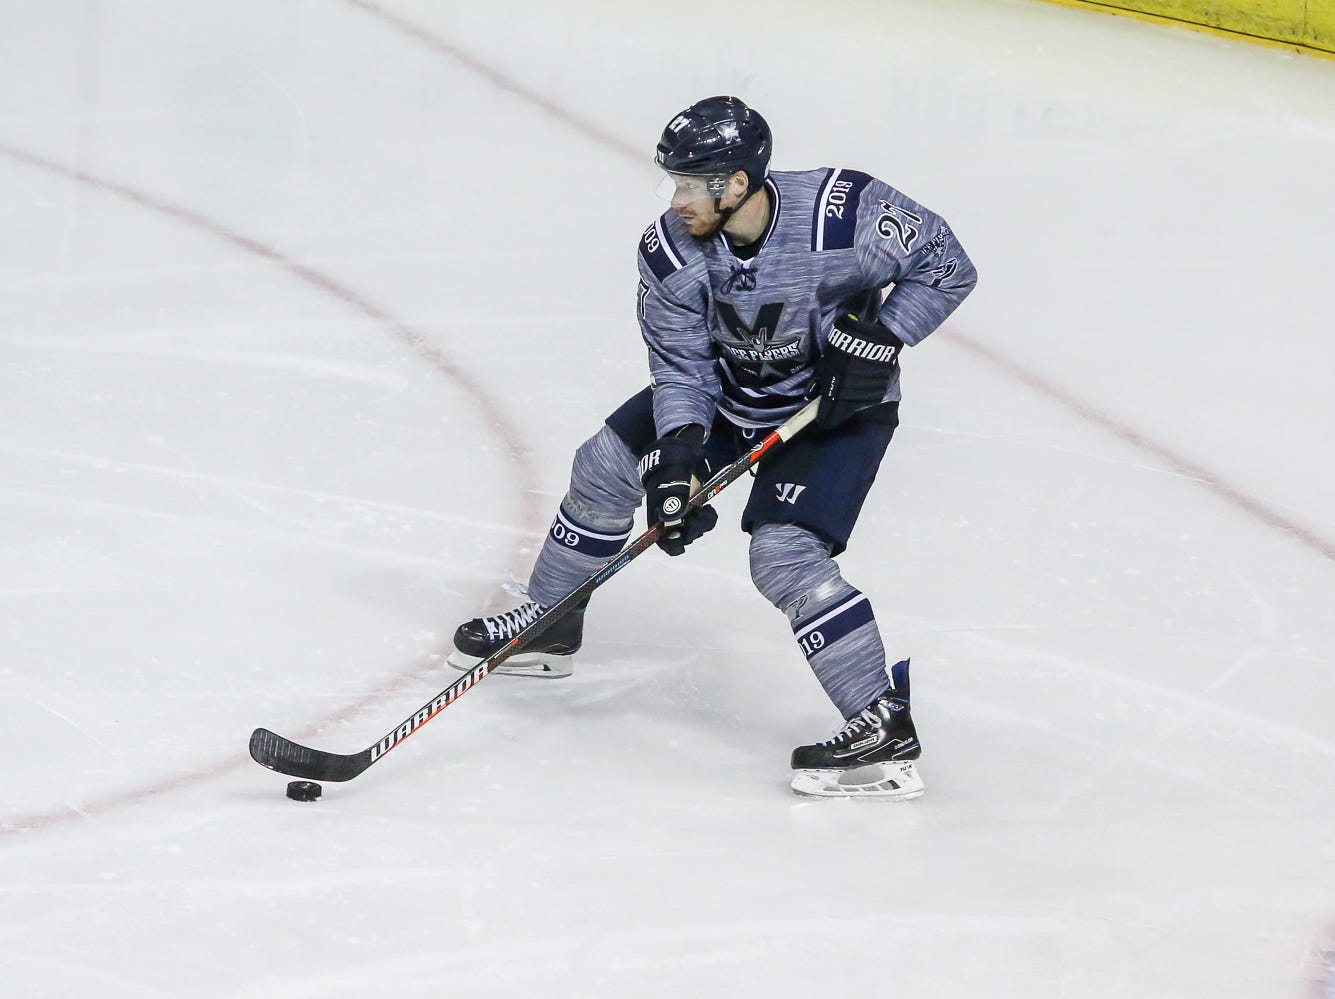 Pensacola's Jesse Kessler (27) looks to clear the puck against Macon during the last home game of the regular season at the Pensacola Bay Center on Saturday, March 23, 2019. With over 4,300 people in attendance for Pensacola's 3-1 victory, the Ice Flyers mark six straight years of over 100,000 people at their home games each season. The team has won their last five games in a row and will finish out their last five games on the road before entering the playoffs in a couple of weeks.